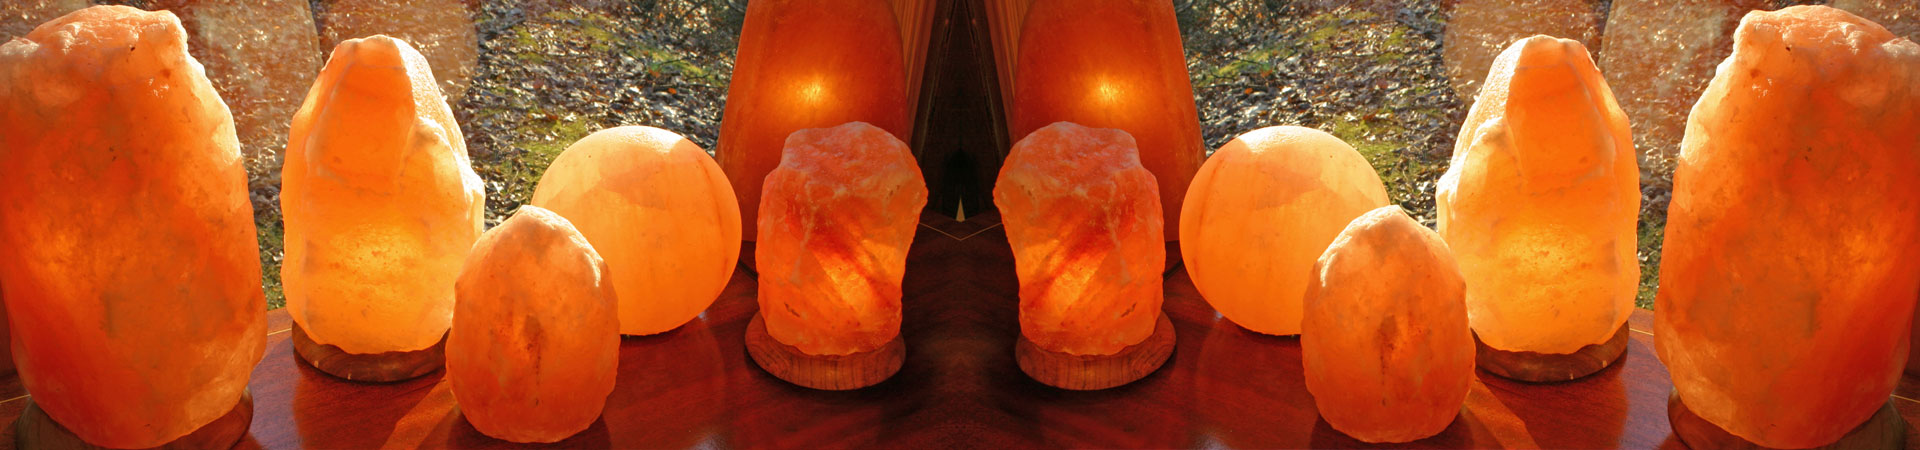 Ishka Himalayan Salt Lamps : Himalayan Natural Rock Salt Lamps Exporters Pakistan Salt